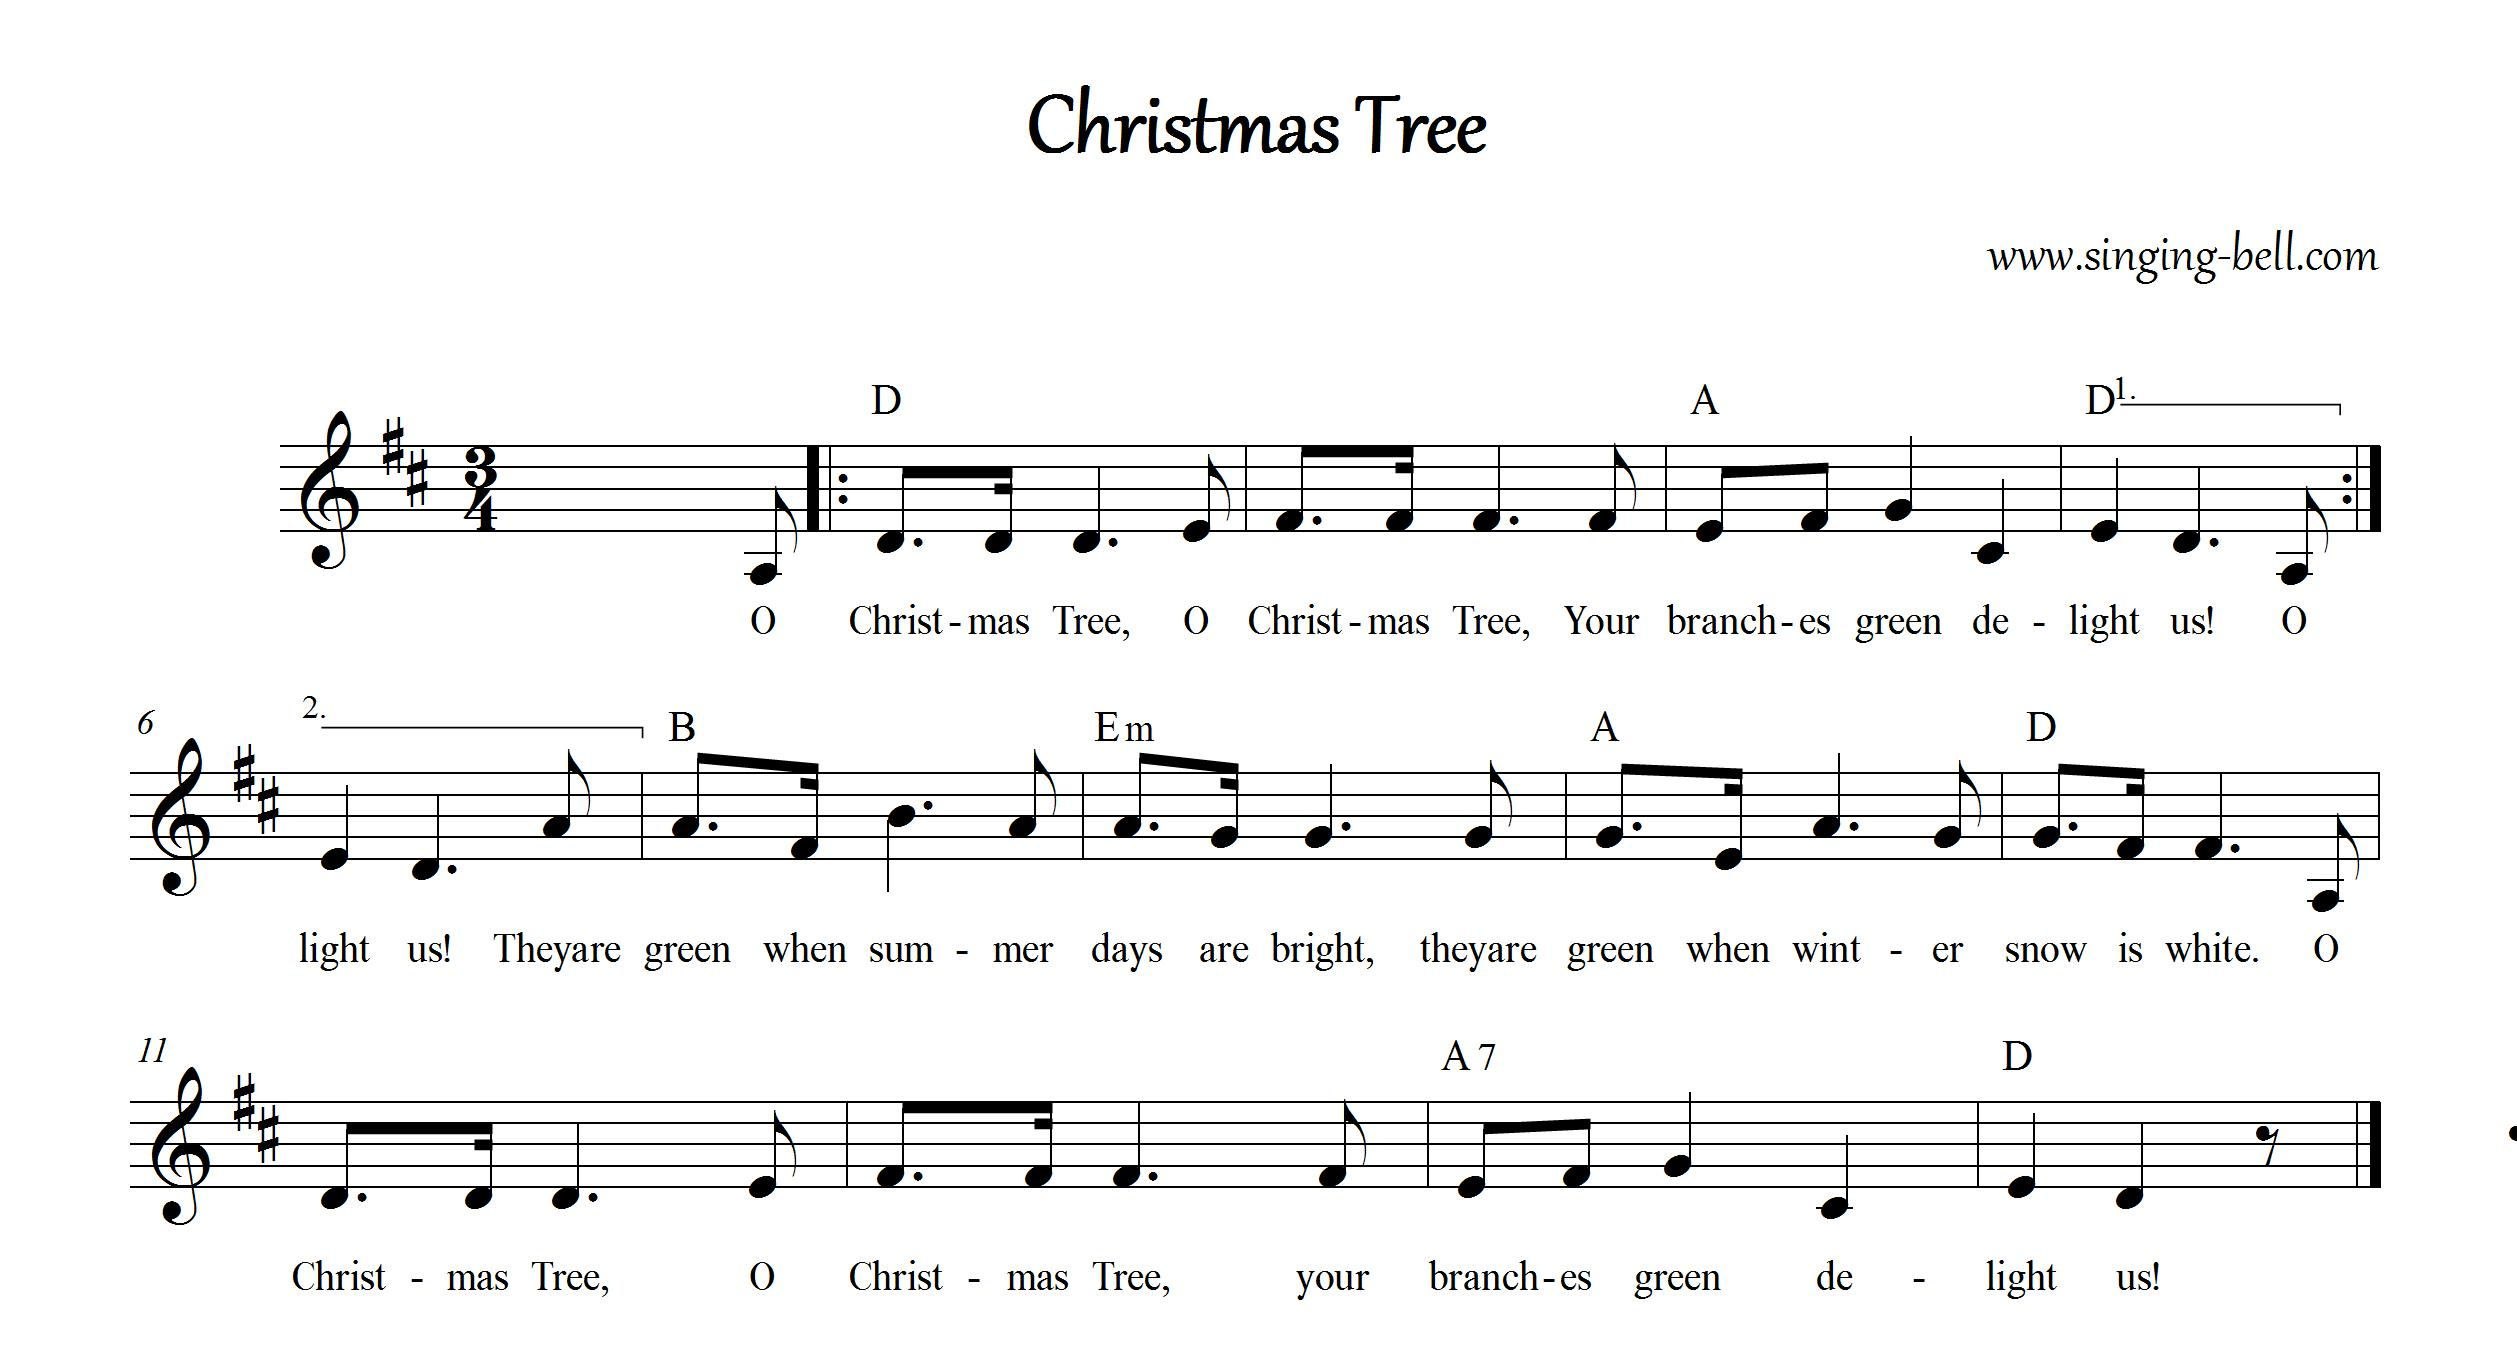 christmas-tree_d_singing-bell